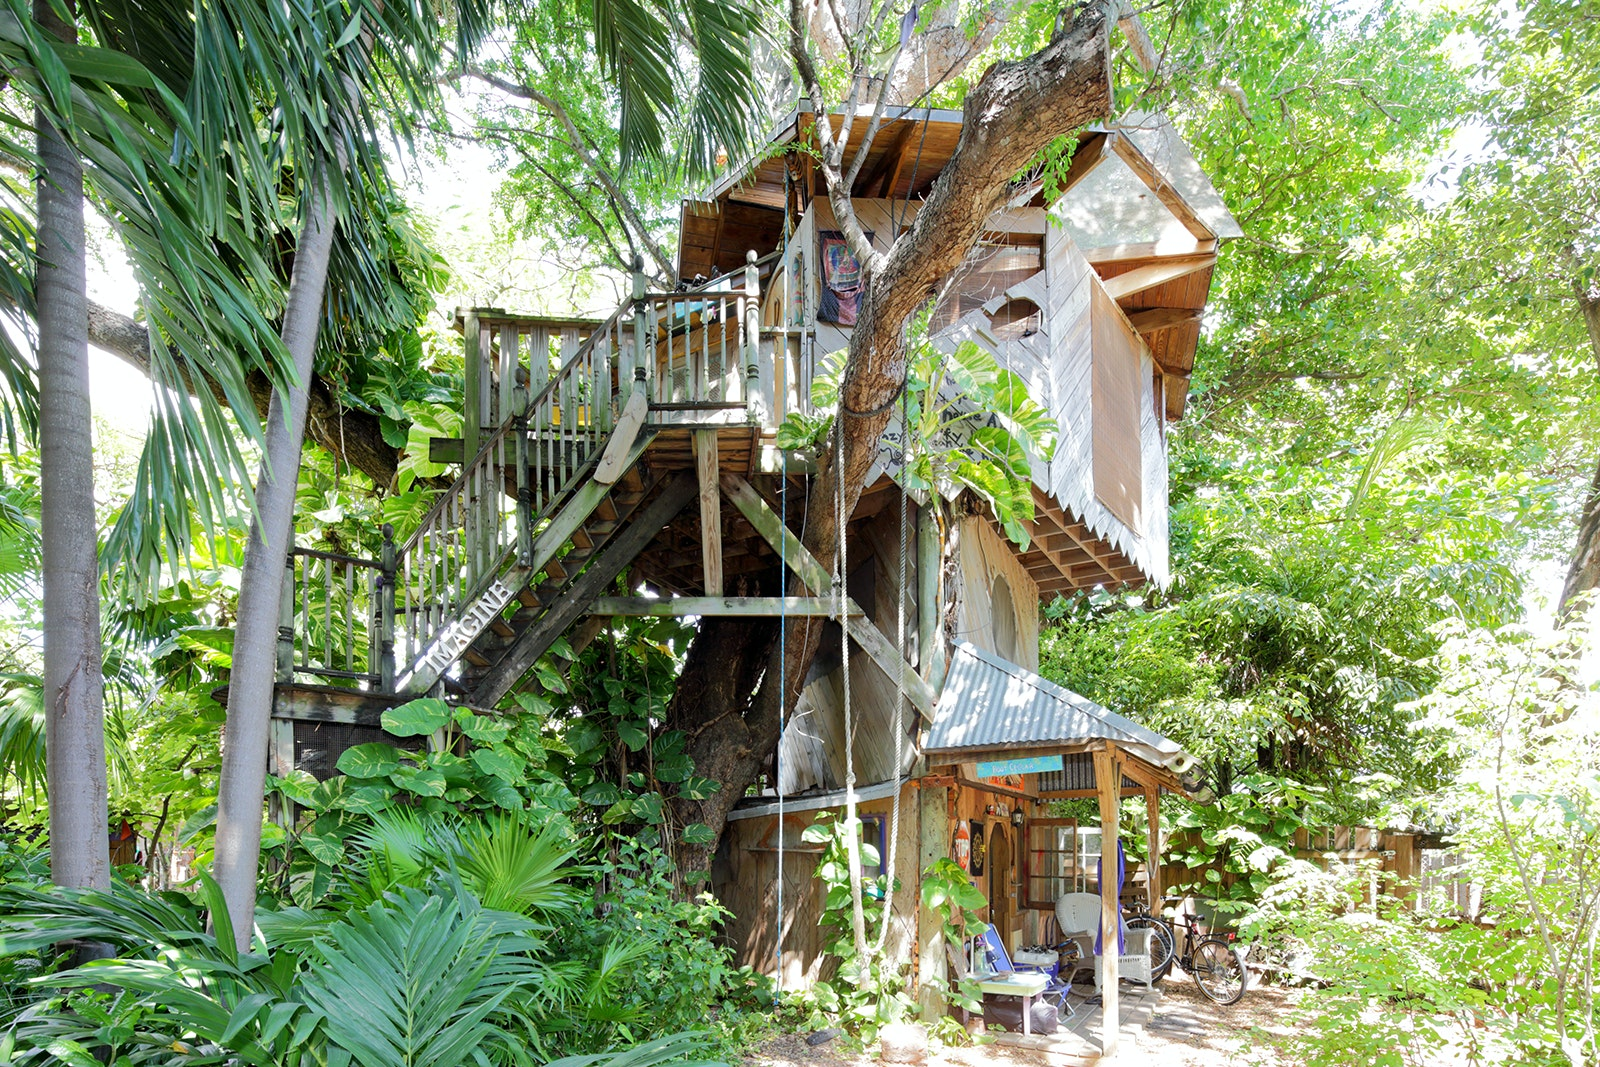 Set on a permaculture farm in Little Haiti, this atypical tree house hideaway offers a unique Miami retreat.